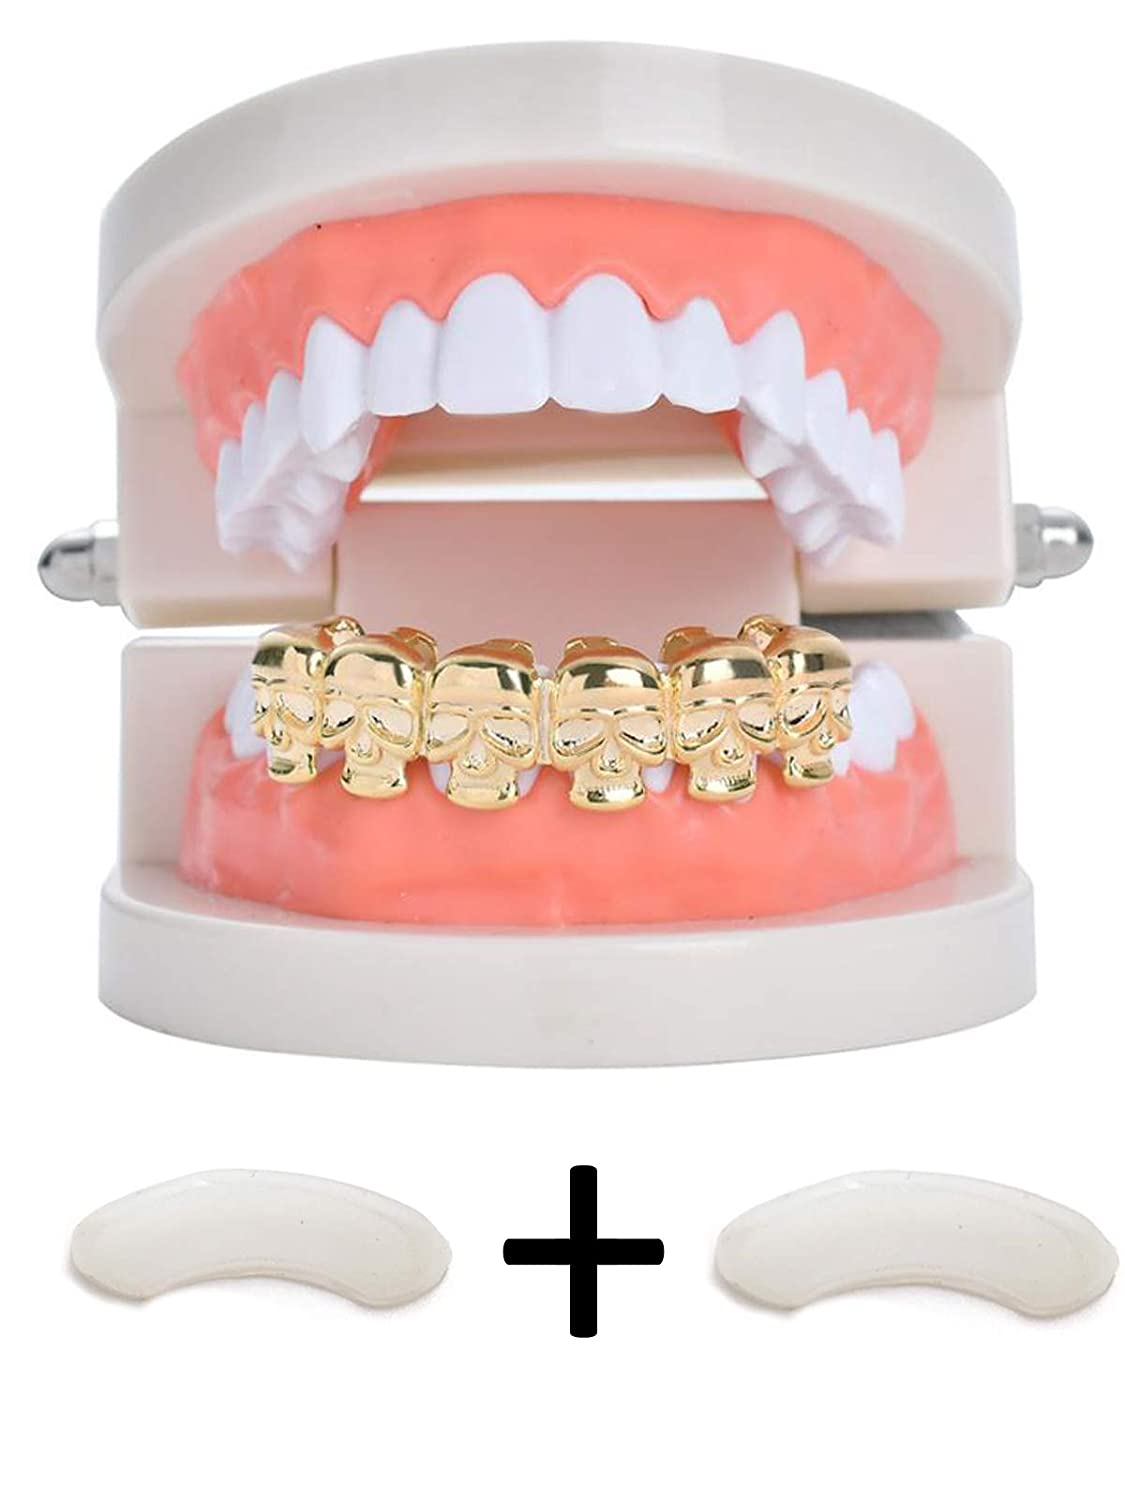 TSANLY Skull Grillz Six Skull Bottom Teeth Grill 24 Gold Plated Rapper Grillz Gift for Halloween … Charly Shop